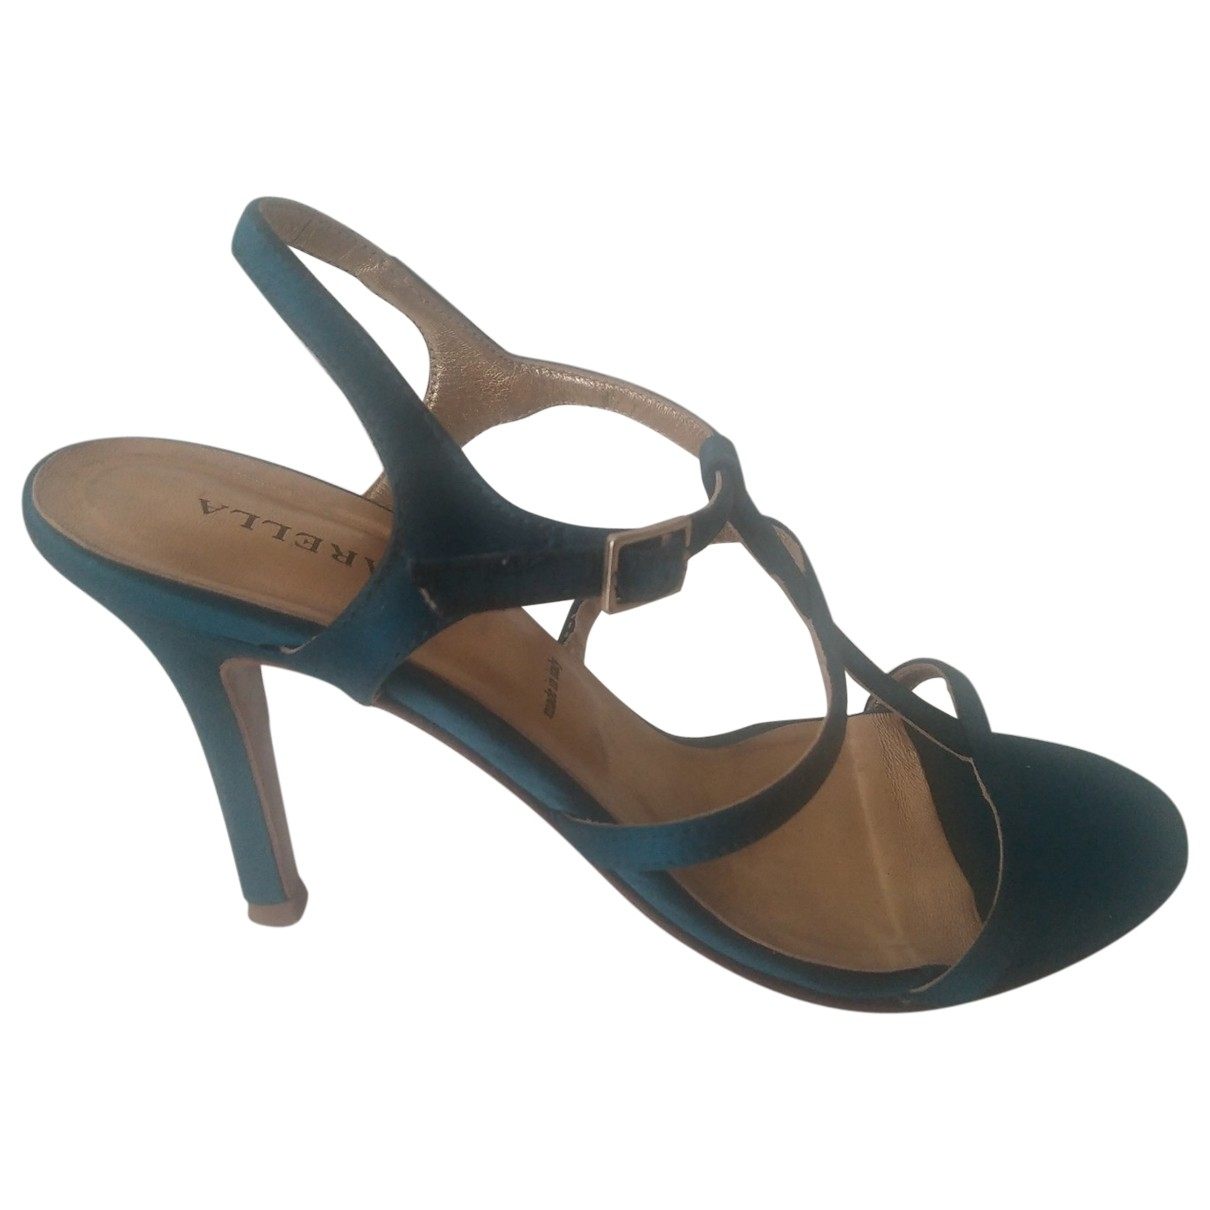 Marella \N Green Cloth Sandals for Women 36 IT